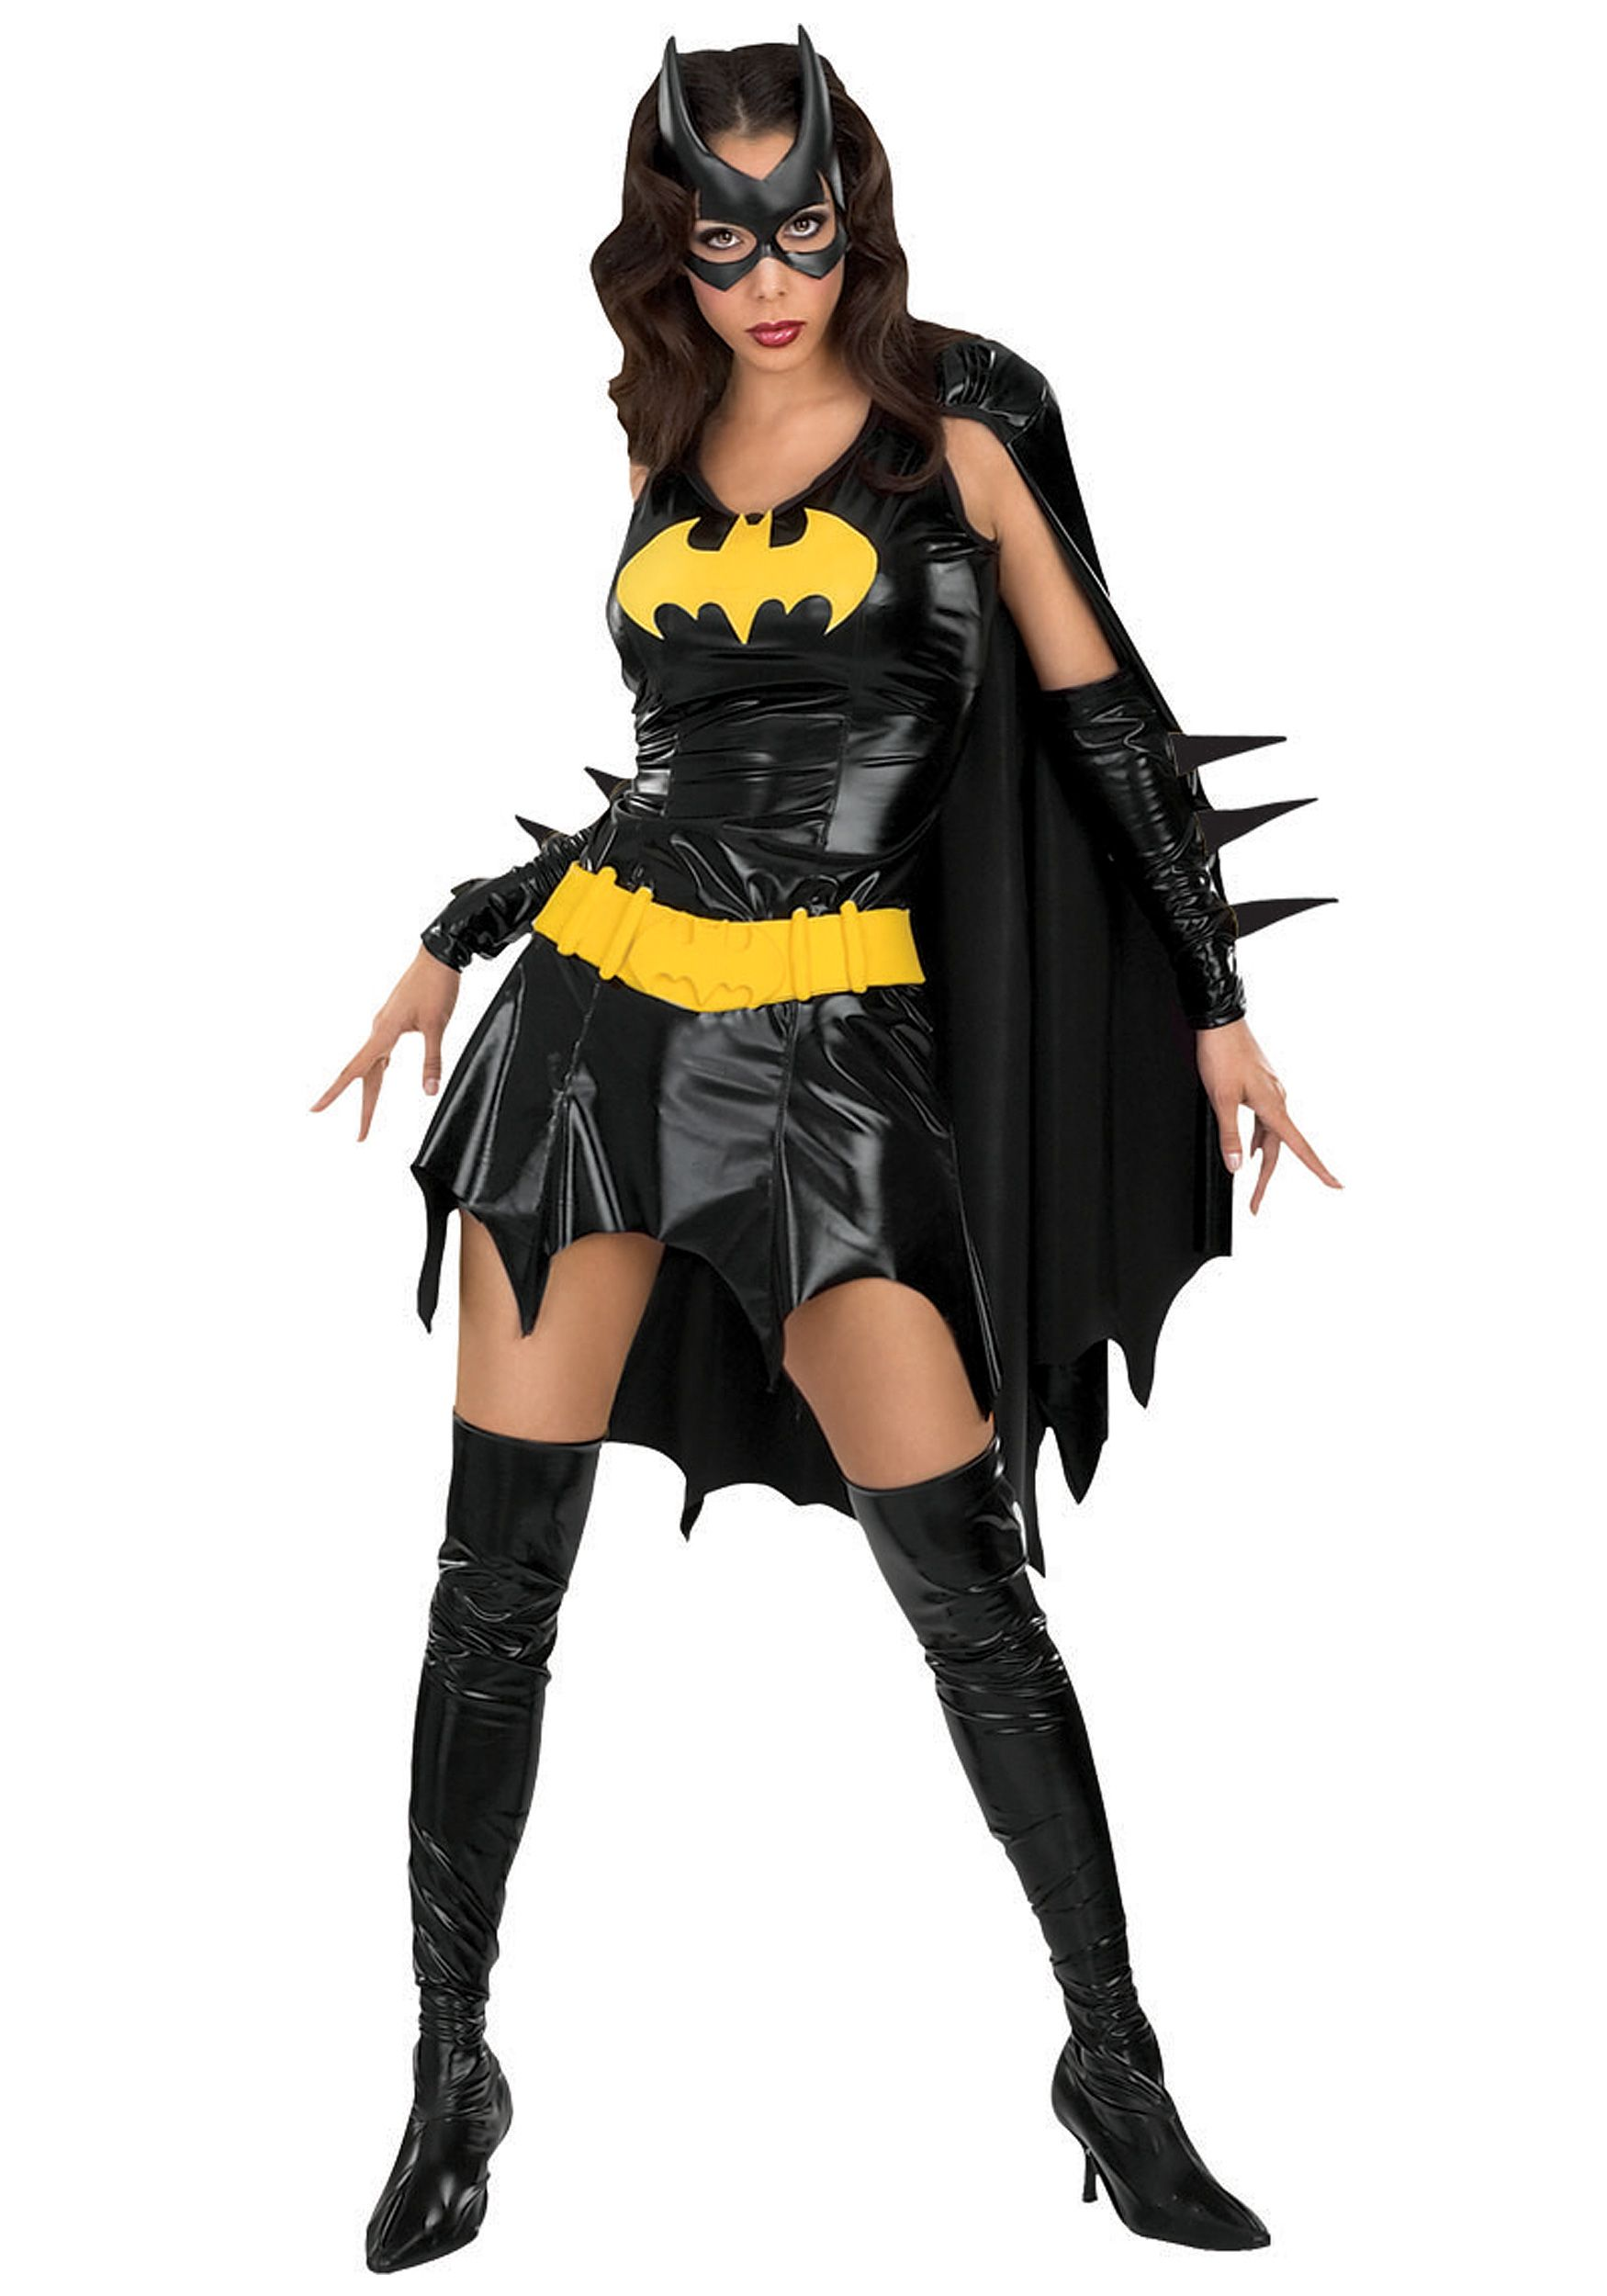 1000+ images about Halloween Costume Ideas!! on Pinterest | The ...